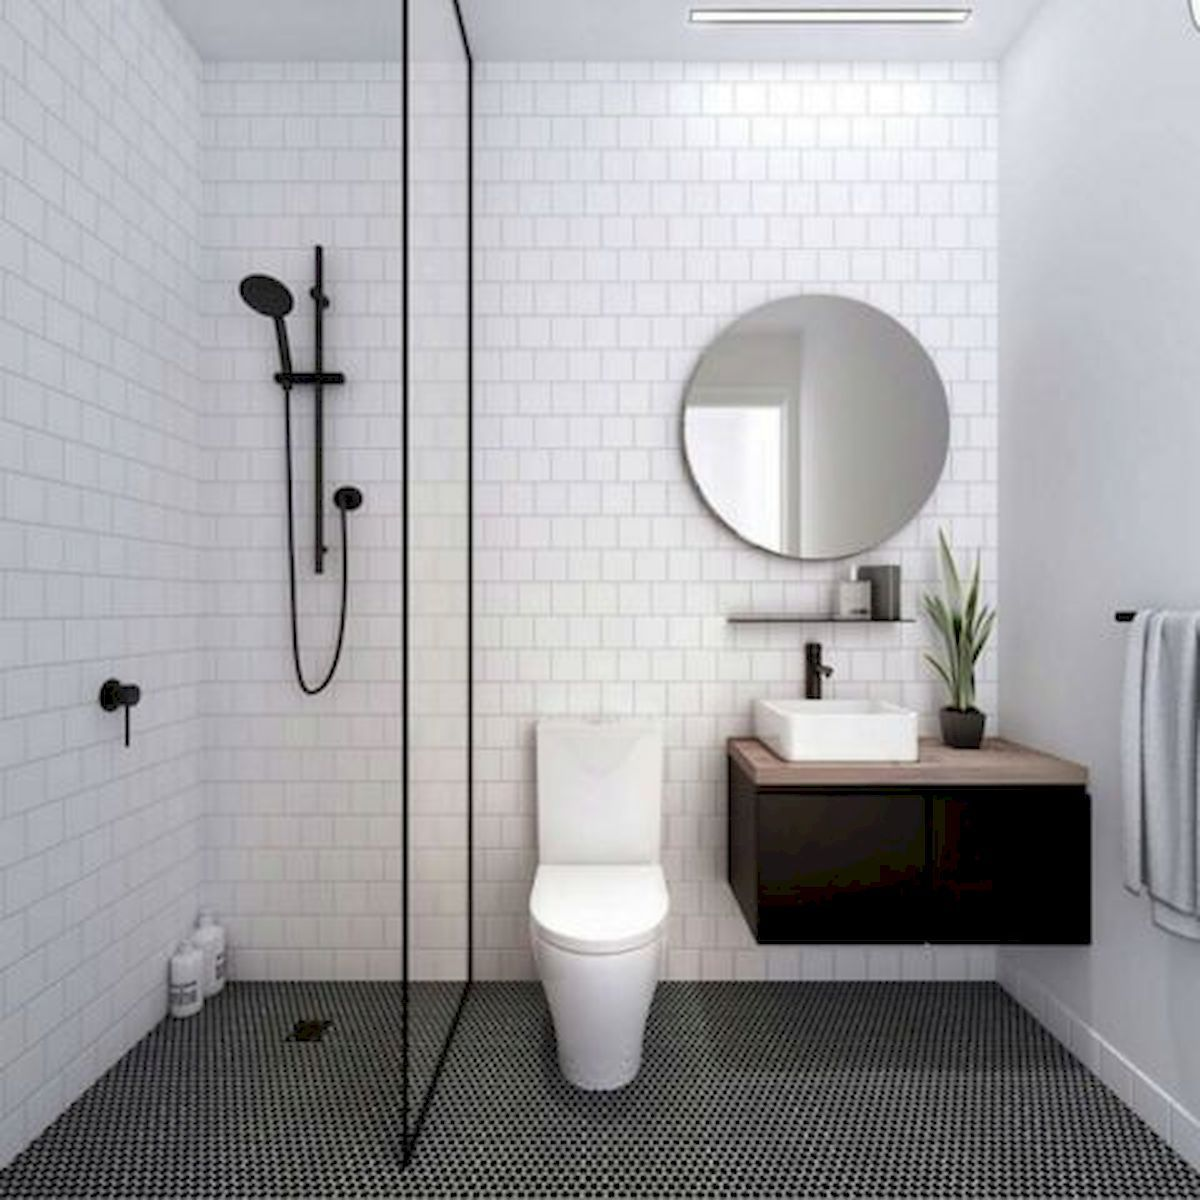 70 Suprising Small Bathroom Design Ideas And Decor Worldecor Co Simple Bathroom Bathroom Design Small Small Bathroom Remodel